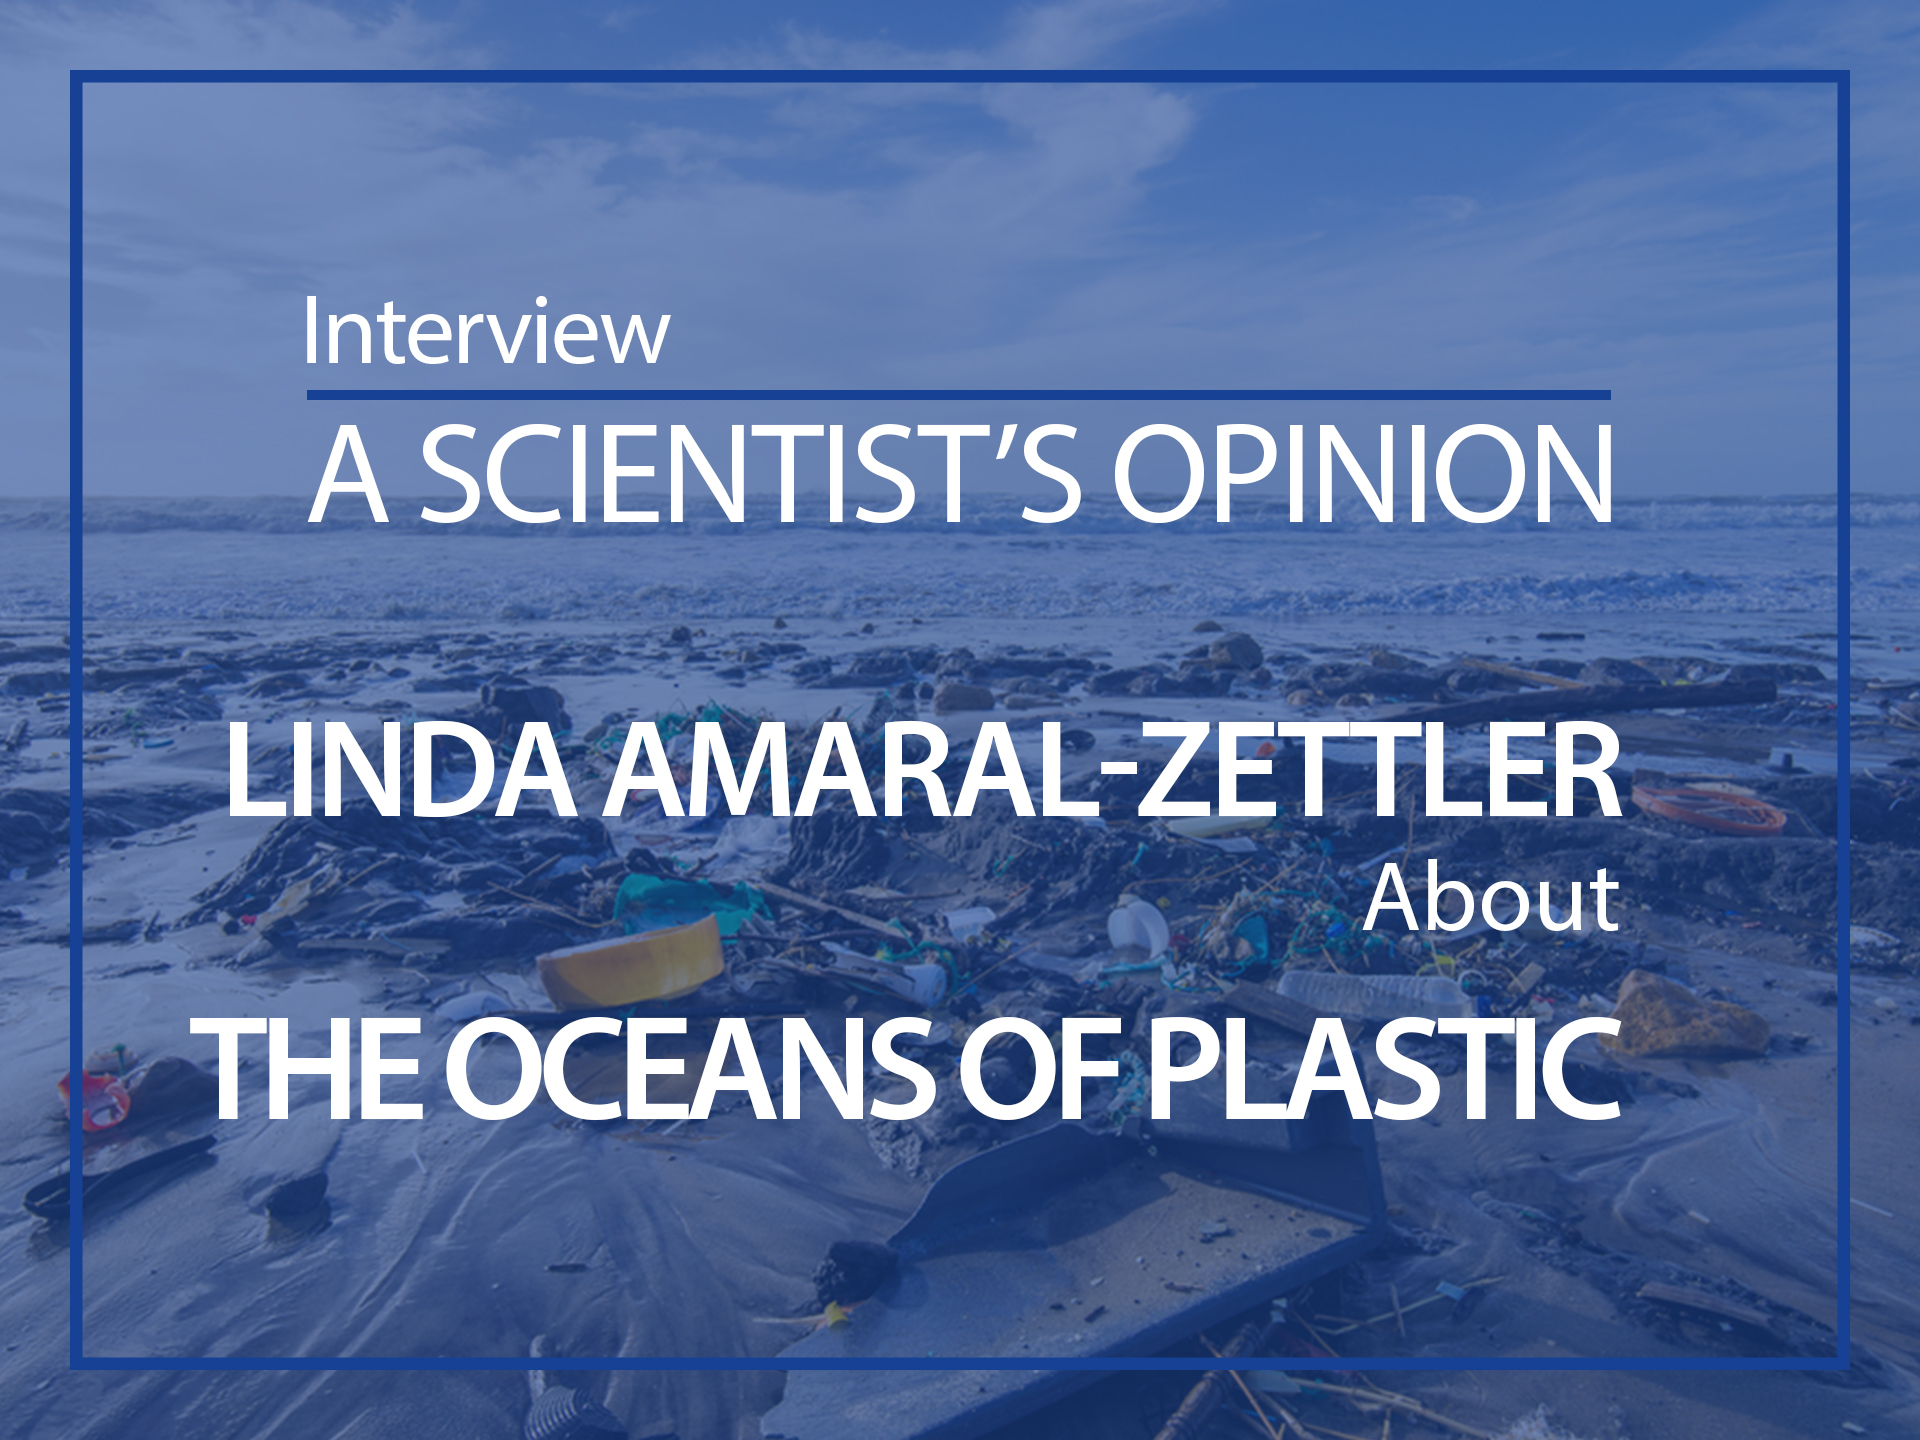 A scientist's opinion : Interview with Linda Amaral-Zettler about plastic pollution